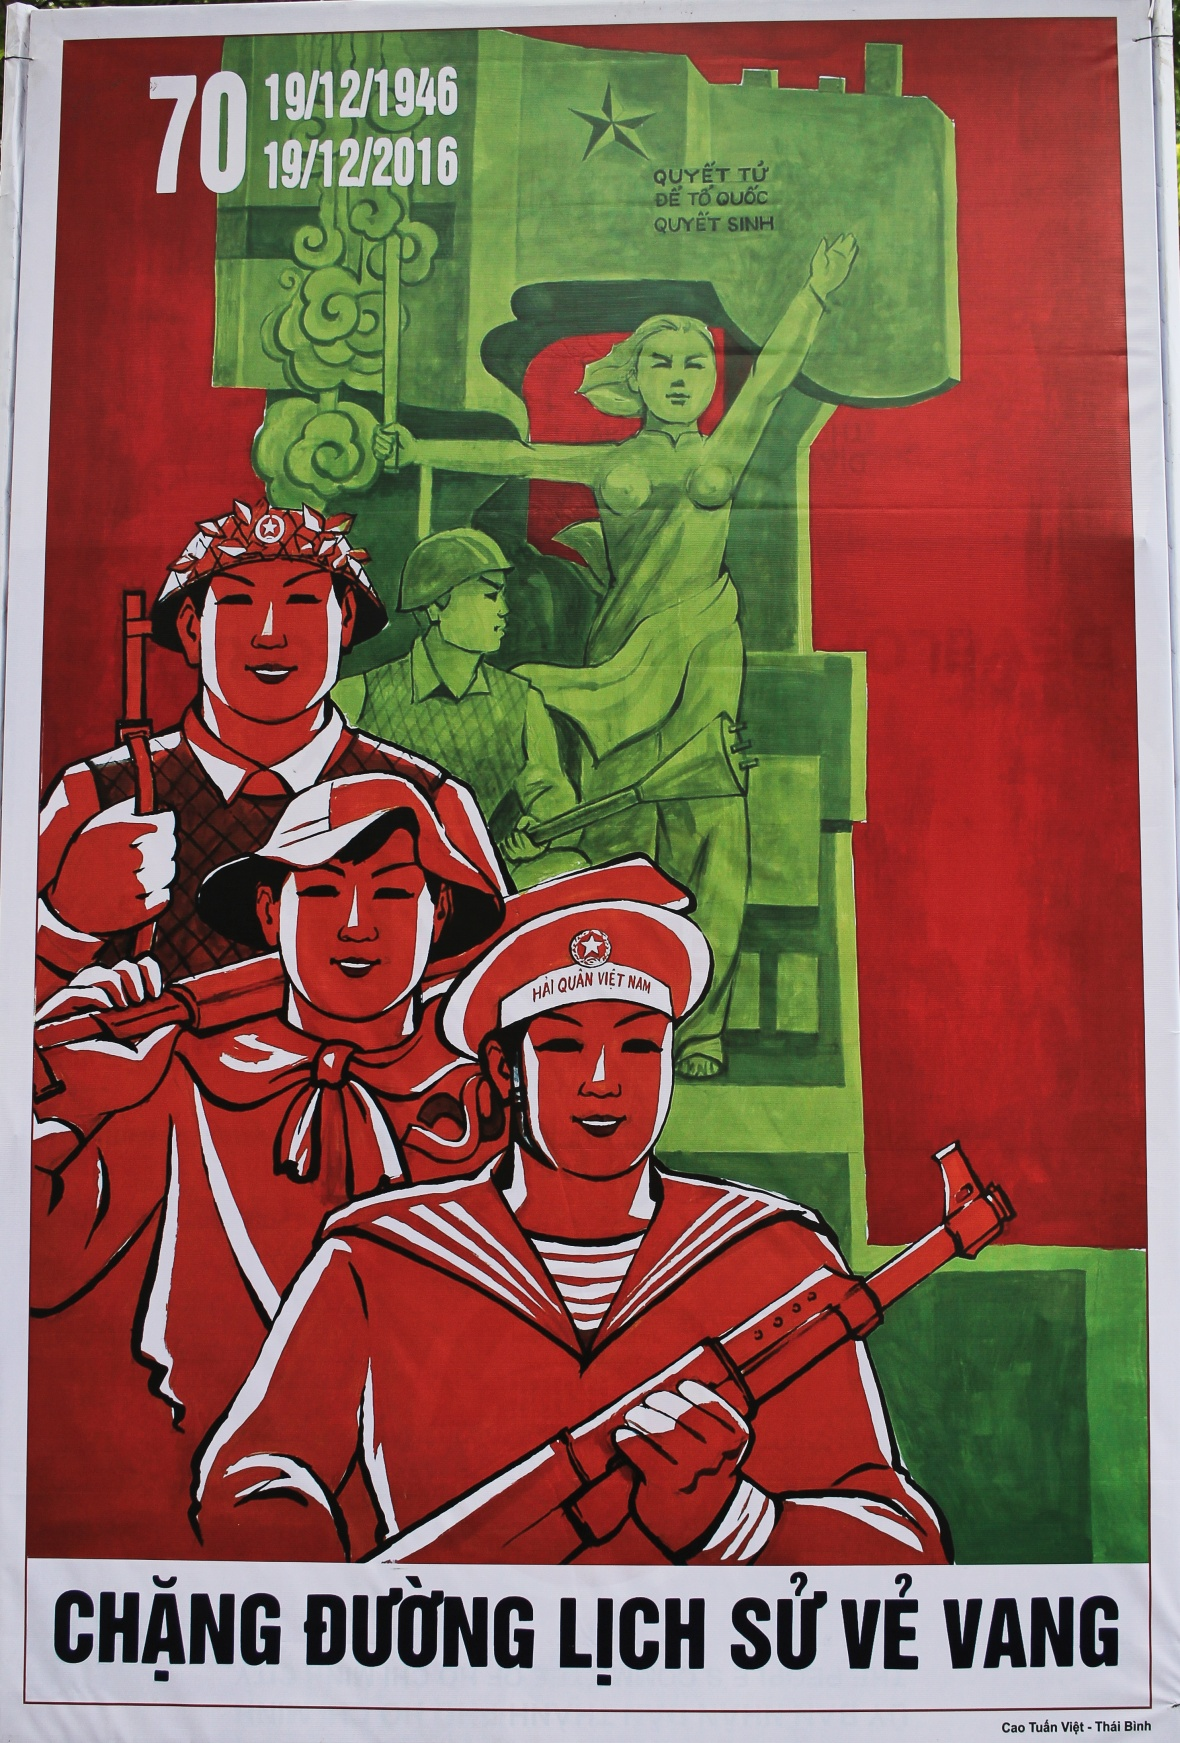 affiches-propagande-hochiminh-monument-peuple-9